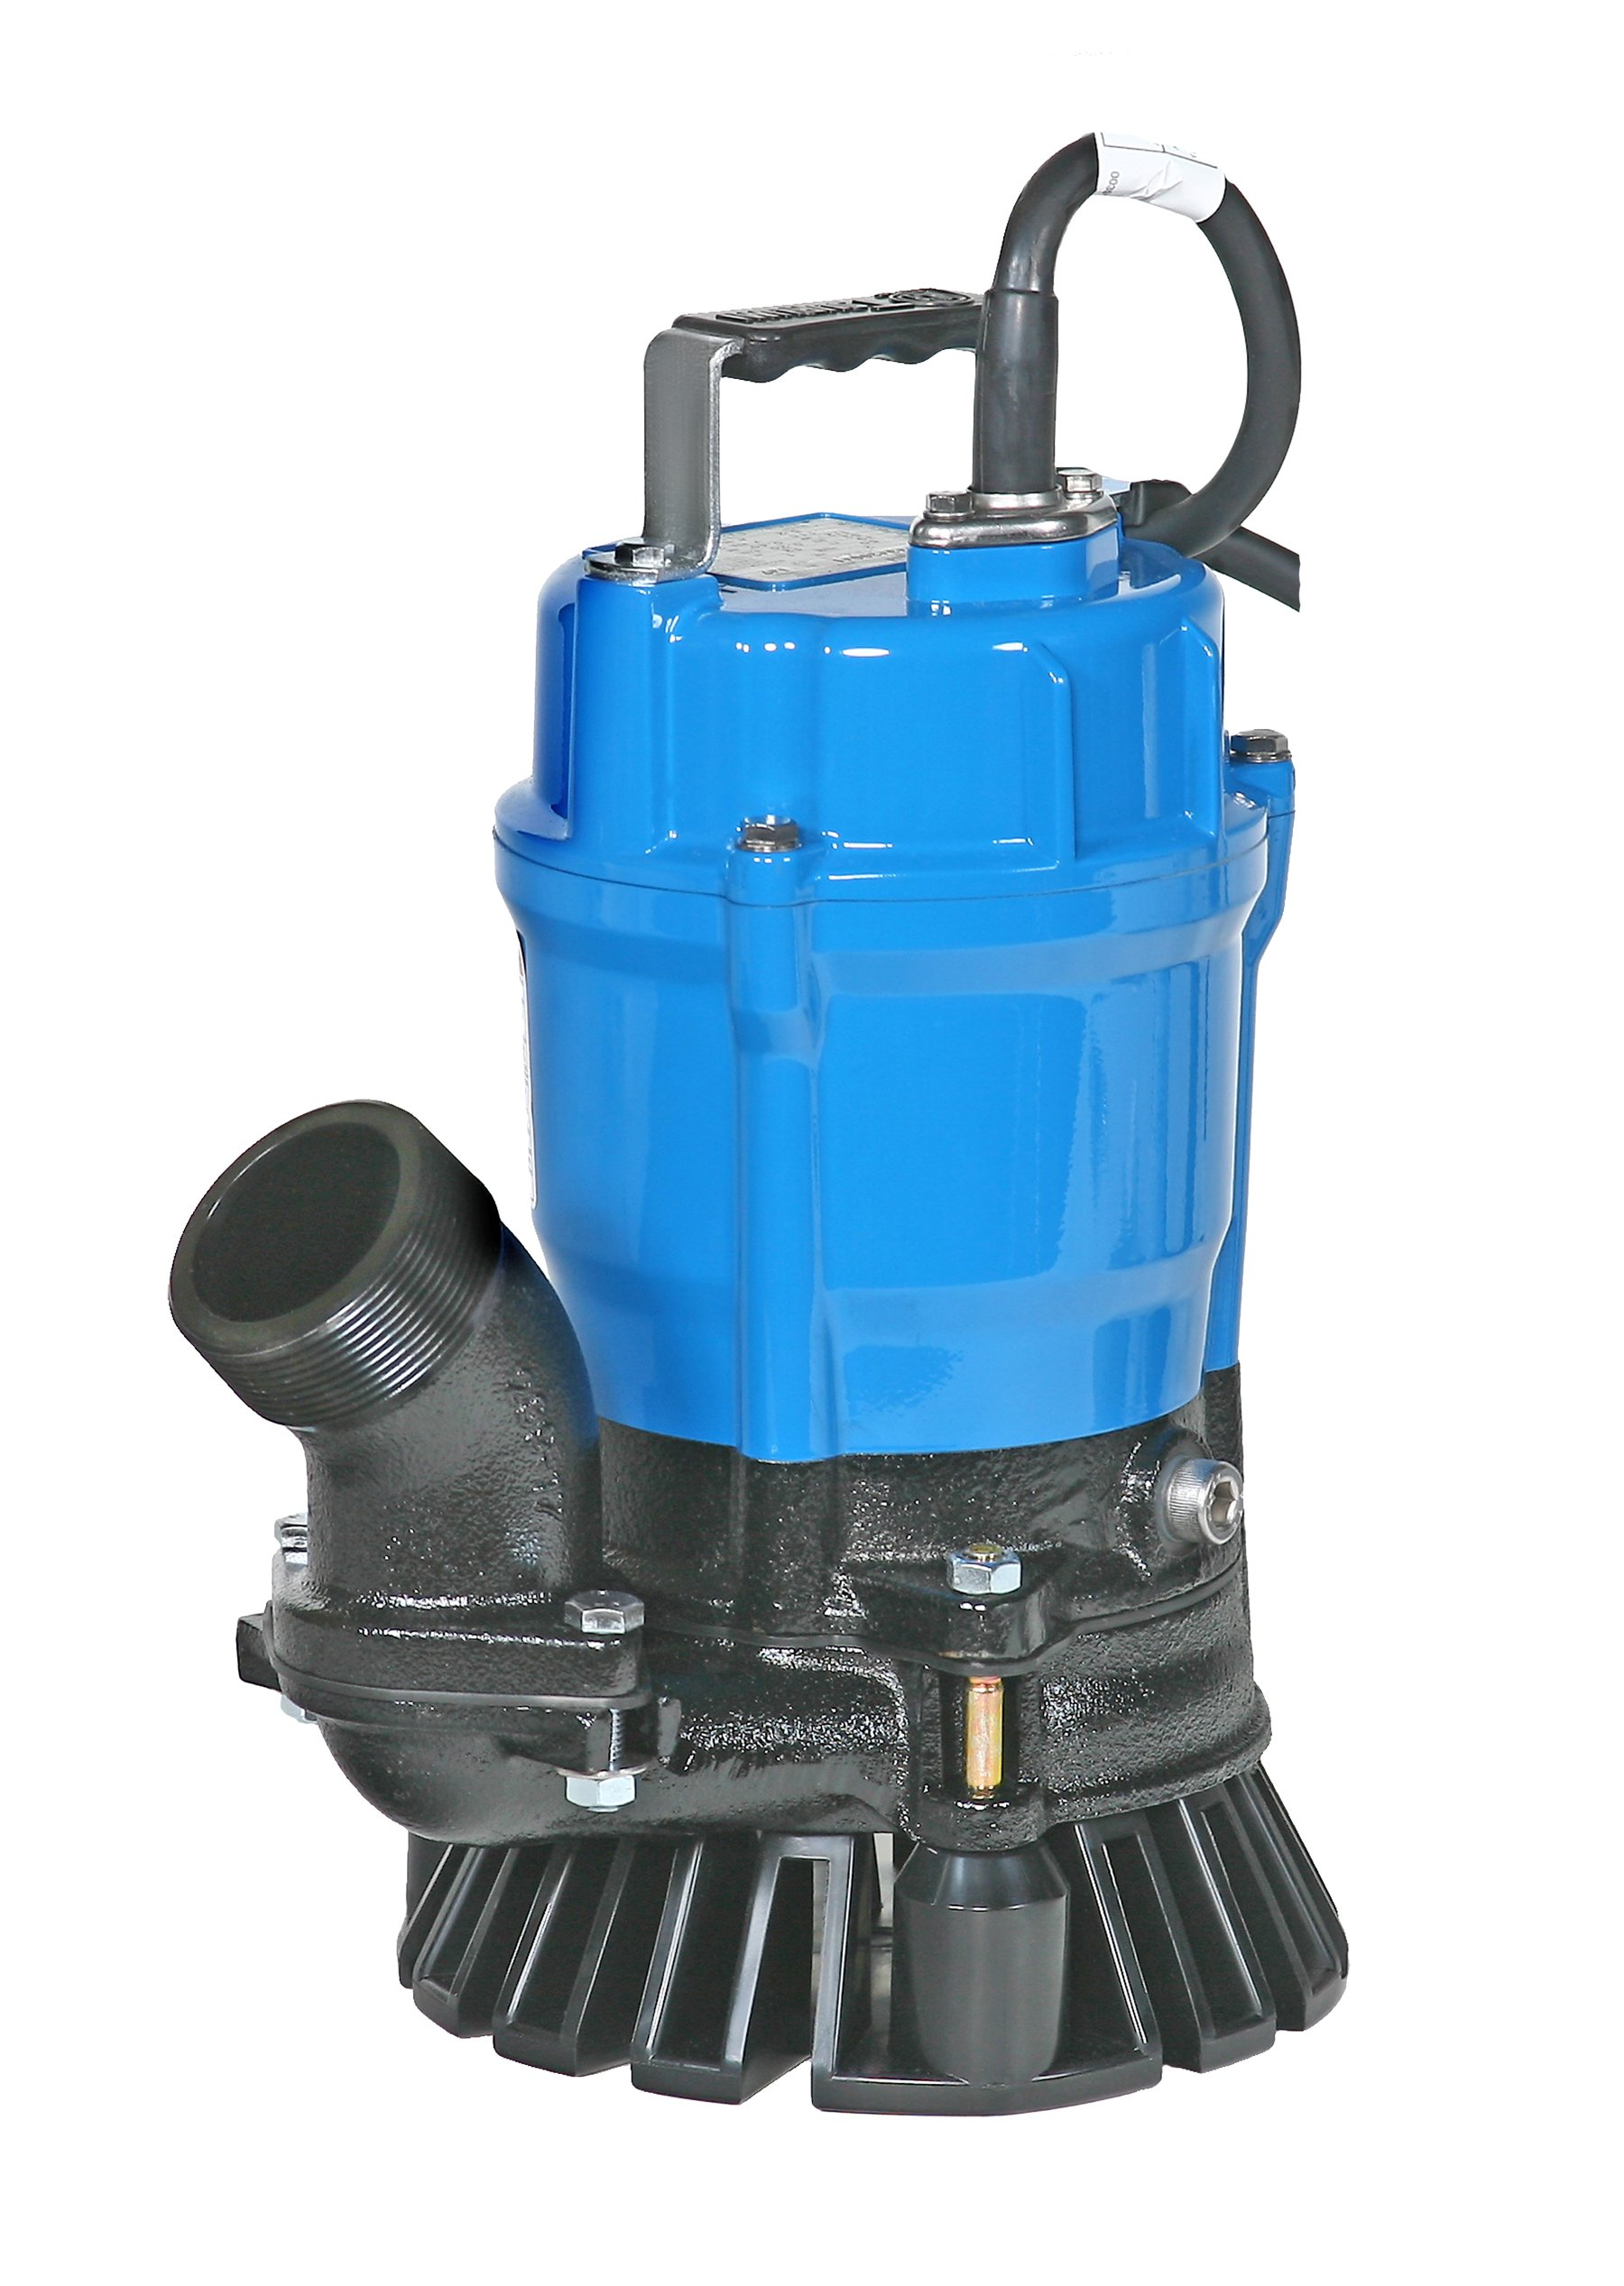 Tsurumi HS2.4S;  semi-vortex submersible trash pump w/agitator, 1/2hp, 115V,  , 2'' discharge